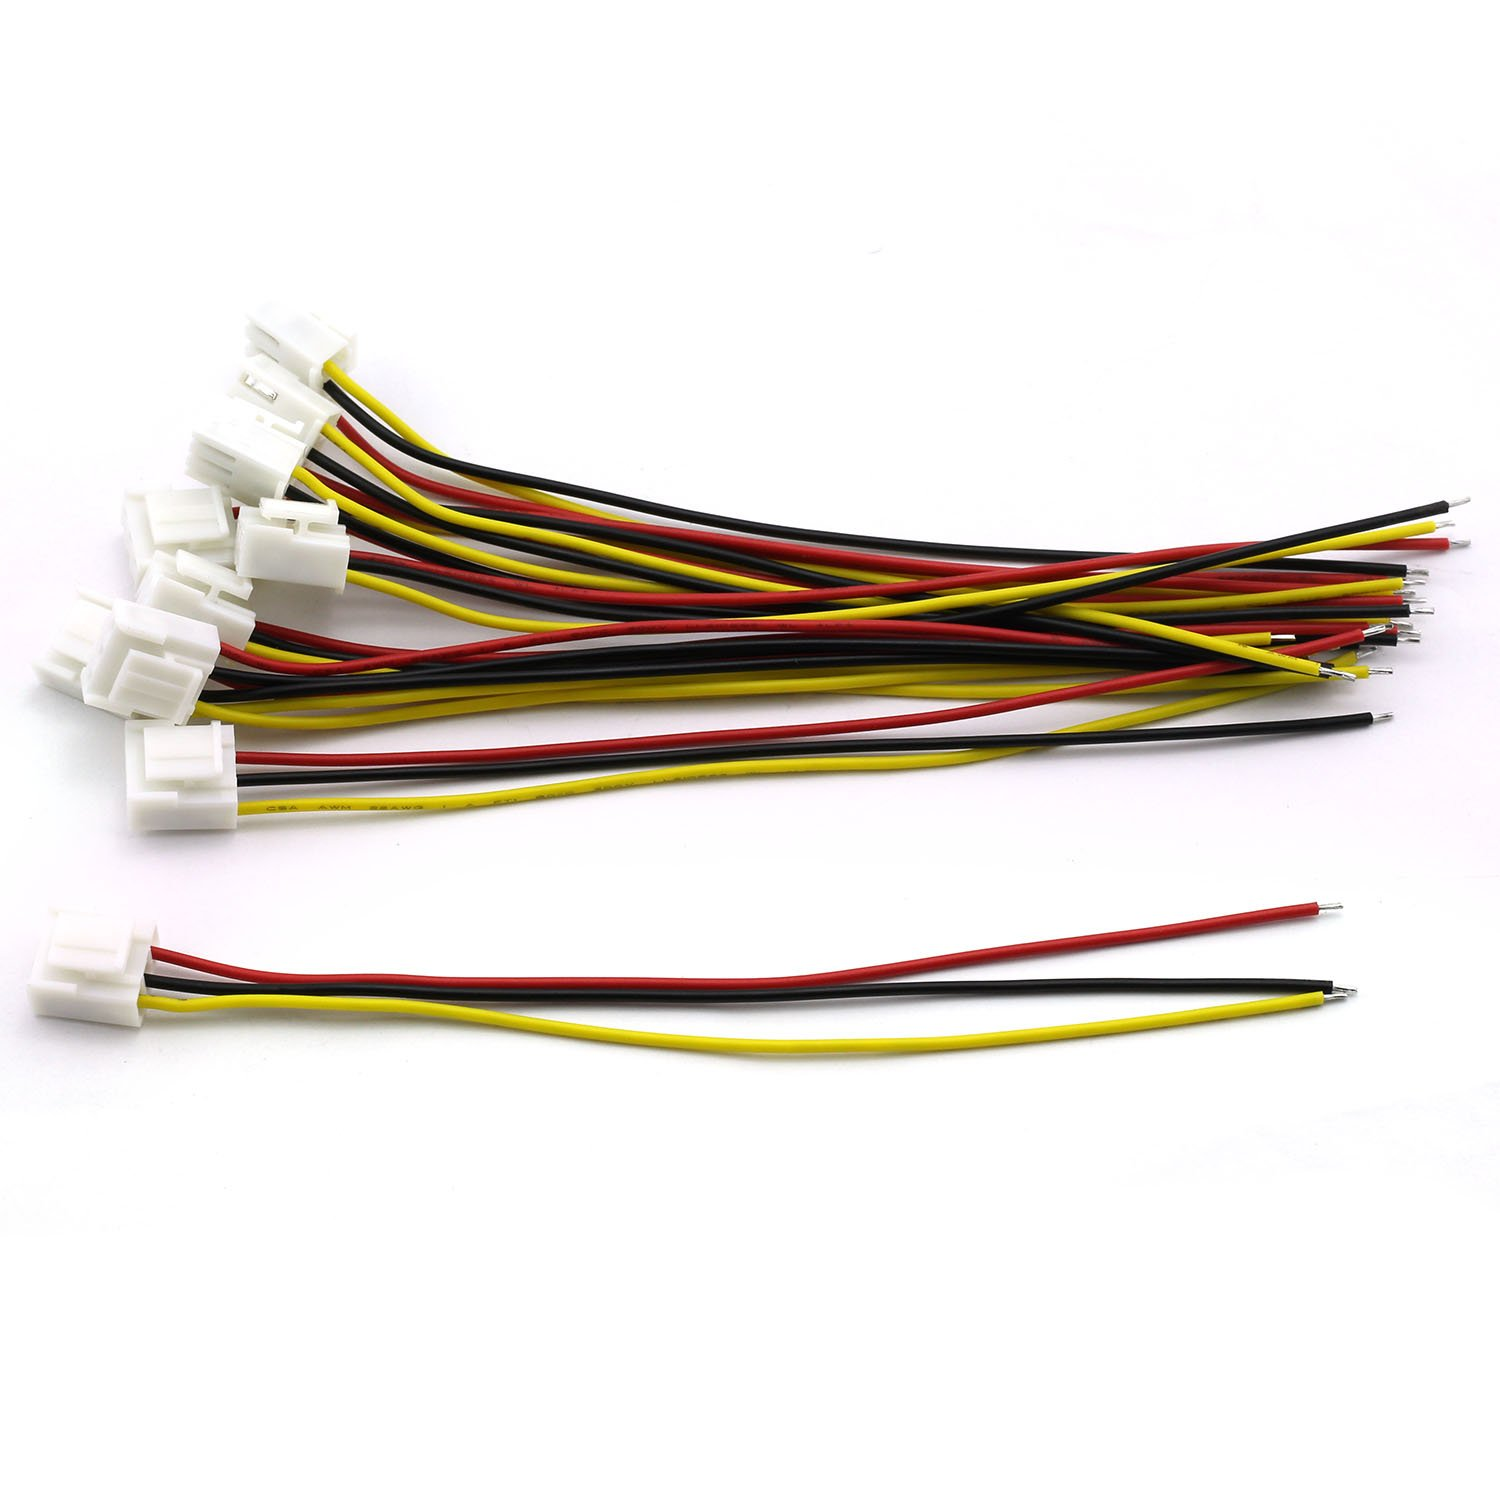 Curved 3P Male Header Connector Magic/&Shell 10 Sets 3.96mm VH Plug Cable Single Head 3Pin Terminal Wire Medical Devices Wire LED Display Mainboard Electric Wire 150mm